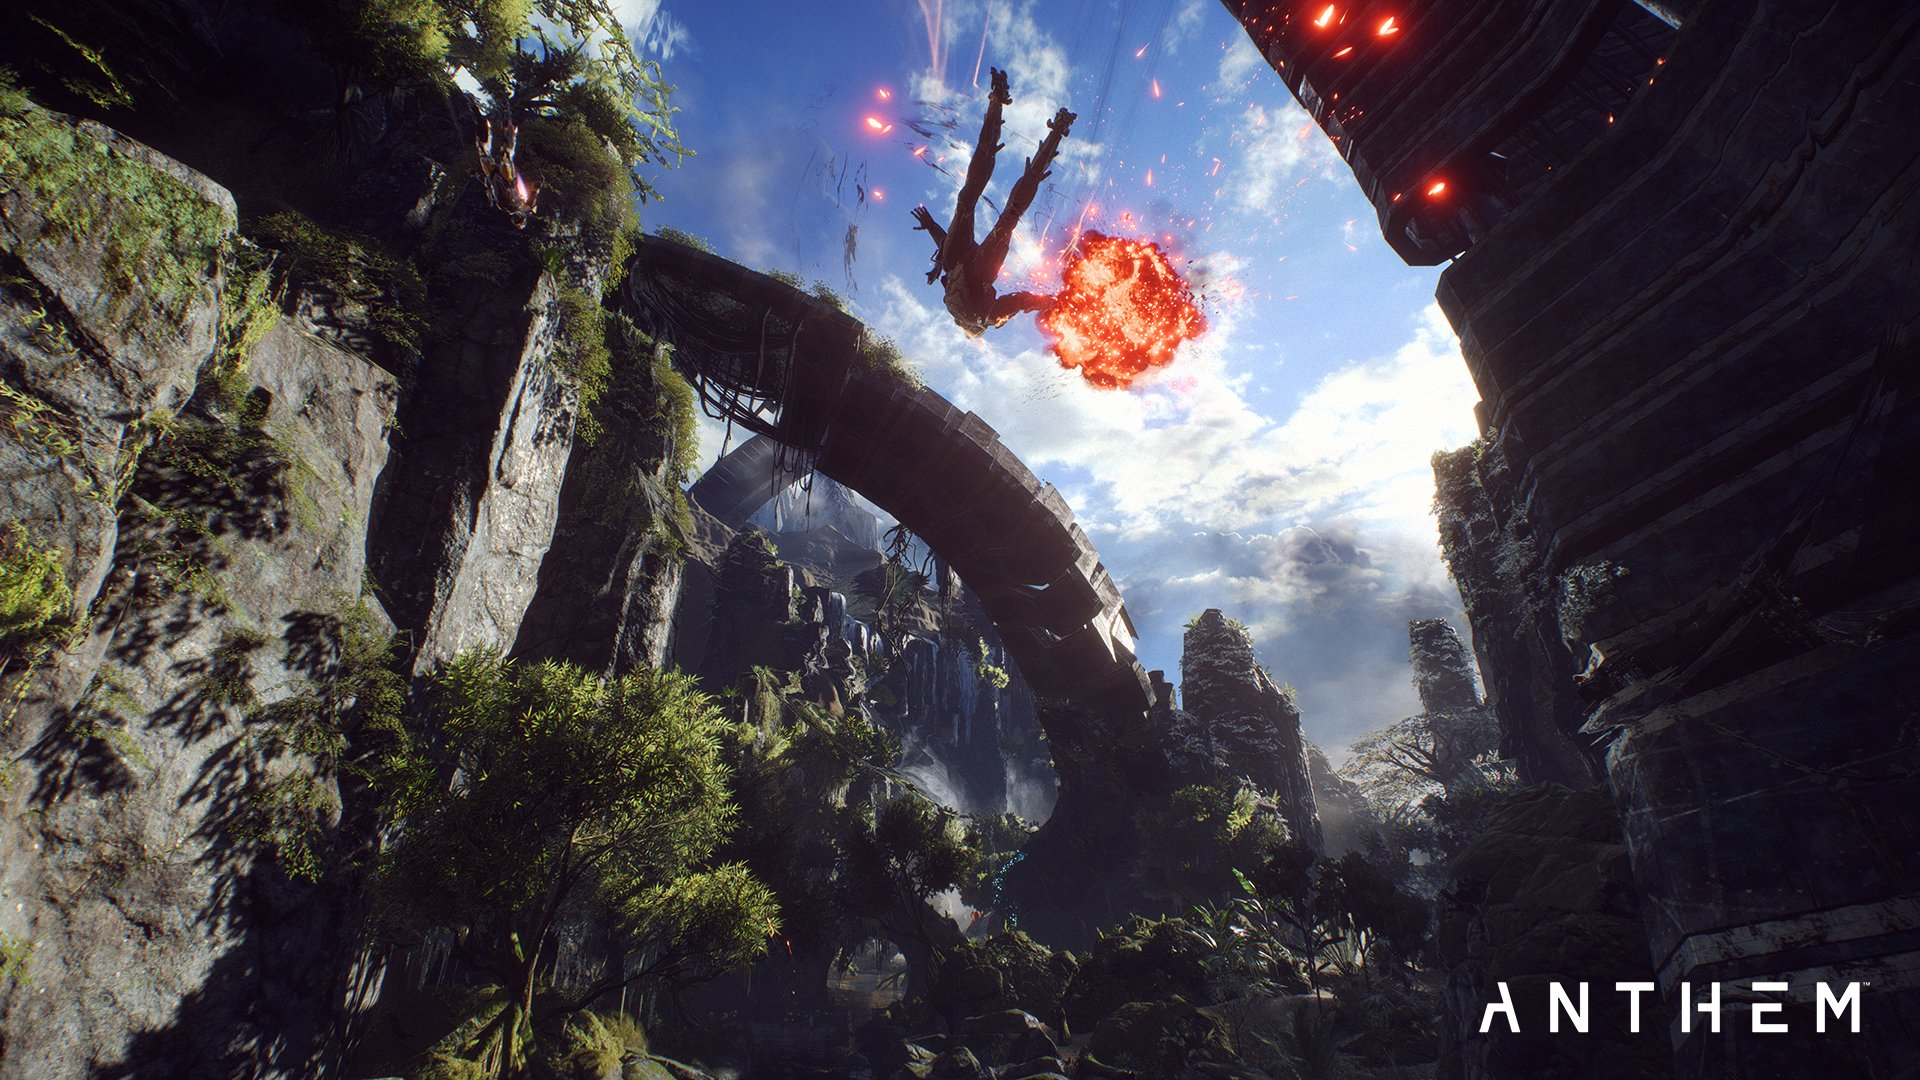 anthem-screenshot-001.jpg